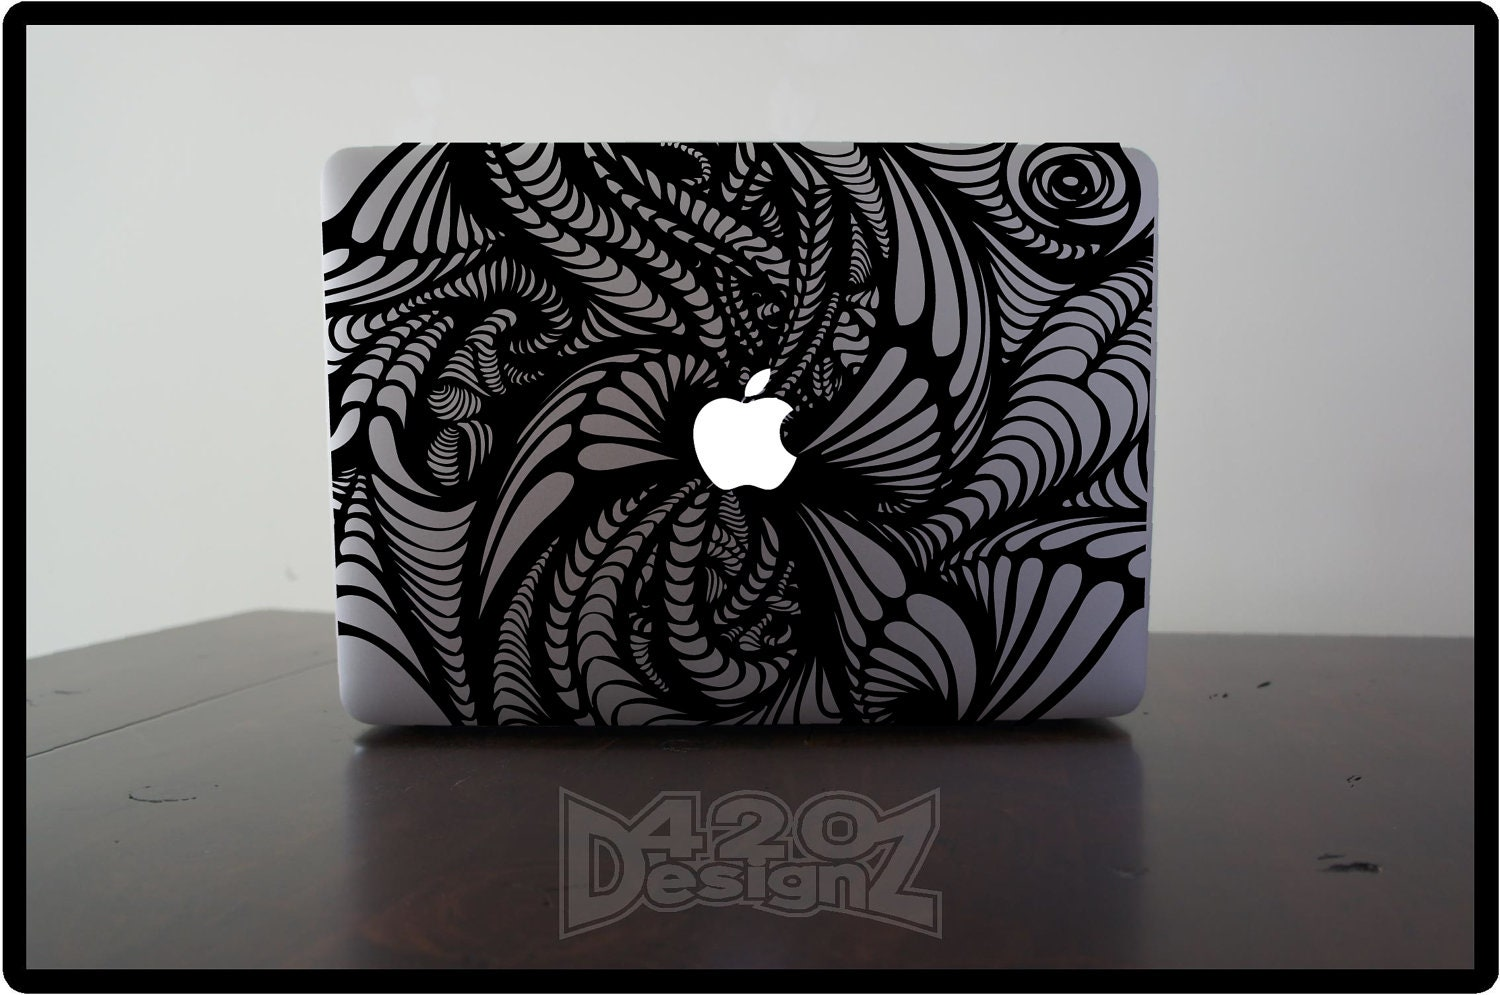 Pattern Macbook Air Macbook Pro Macbook Decals Sticker - Custom vinyl decals for macbook pro